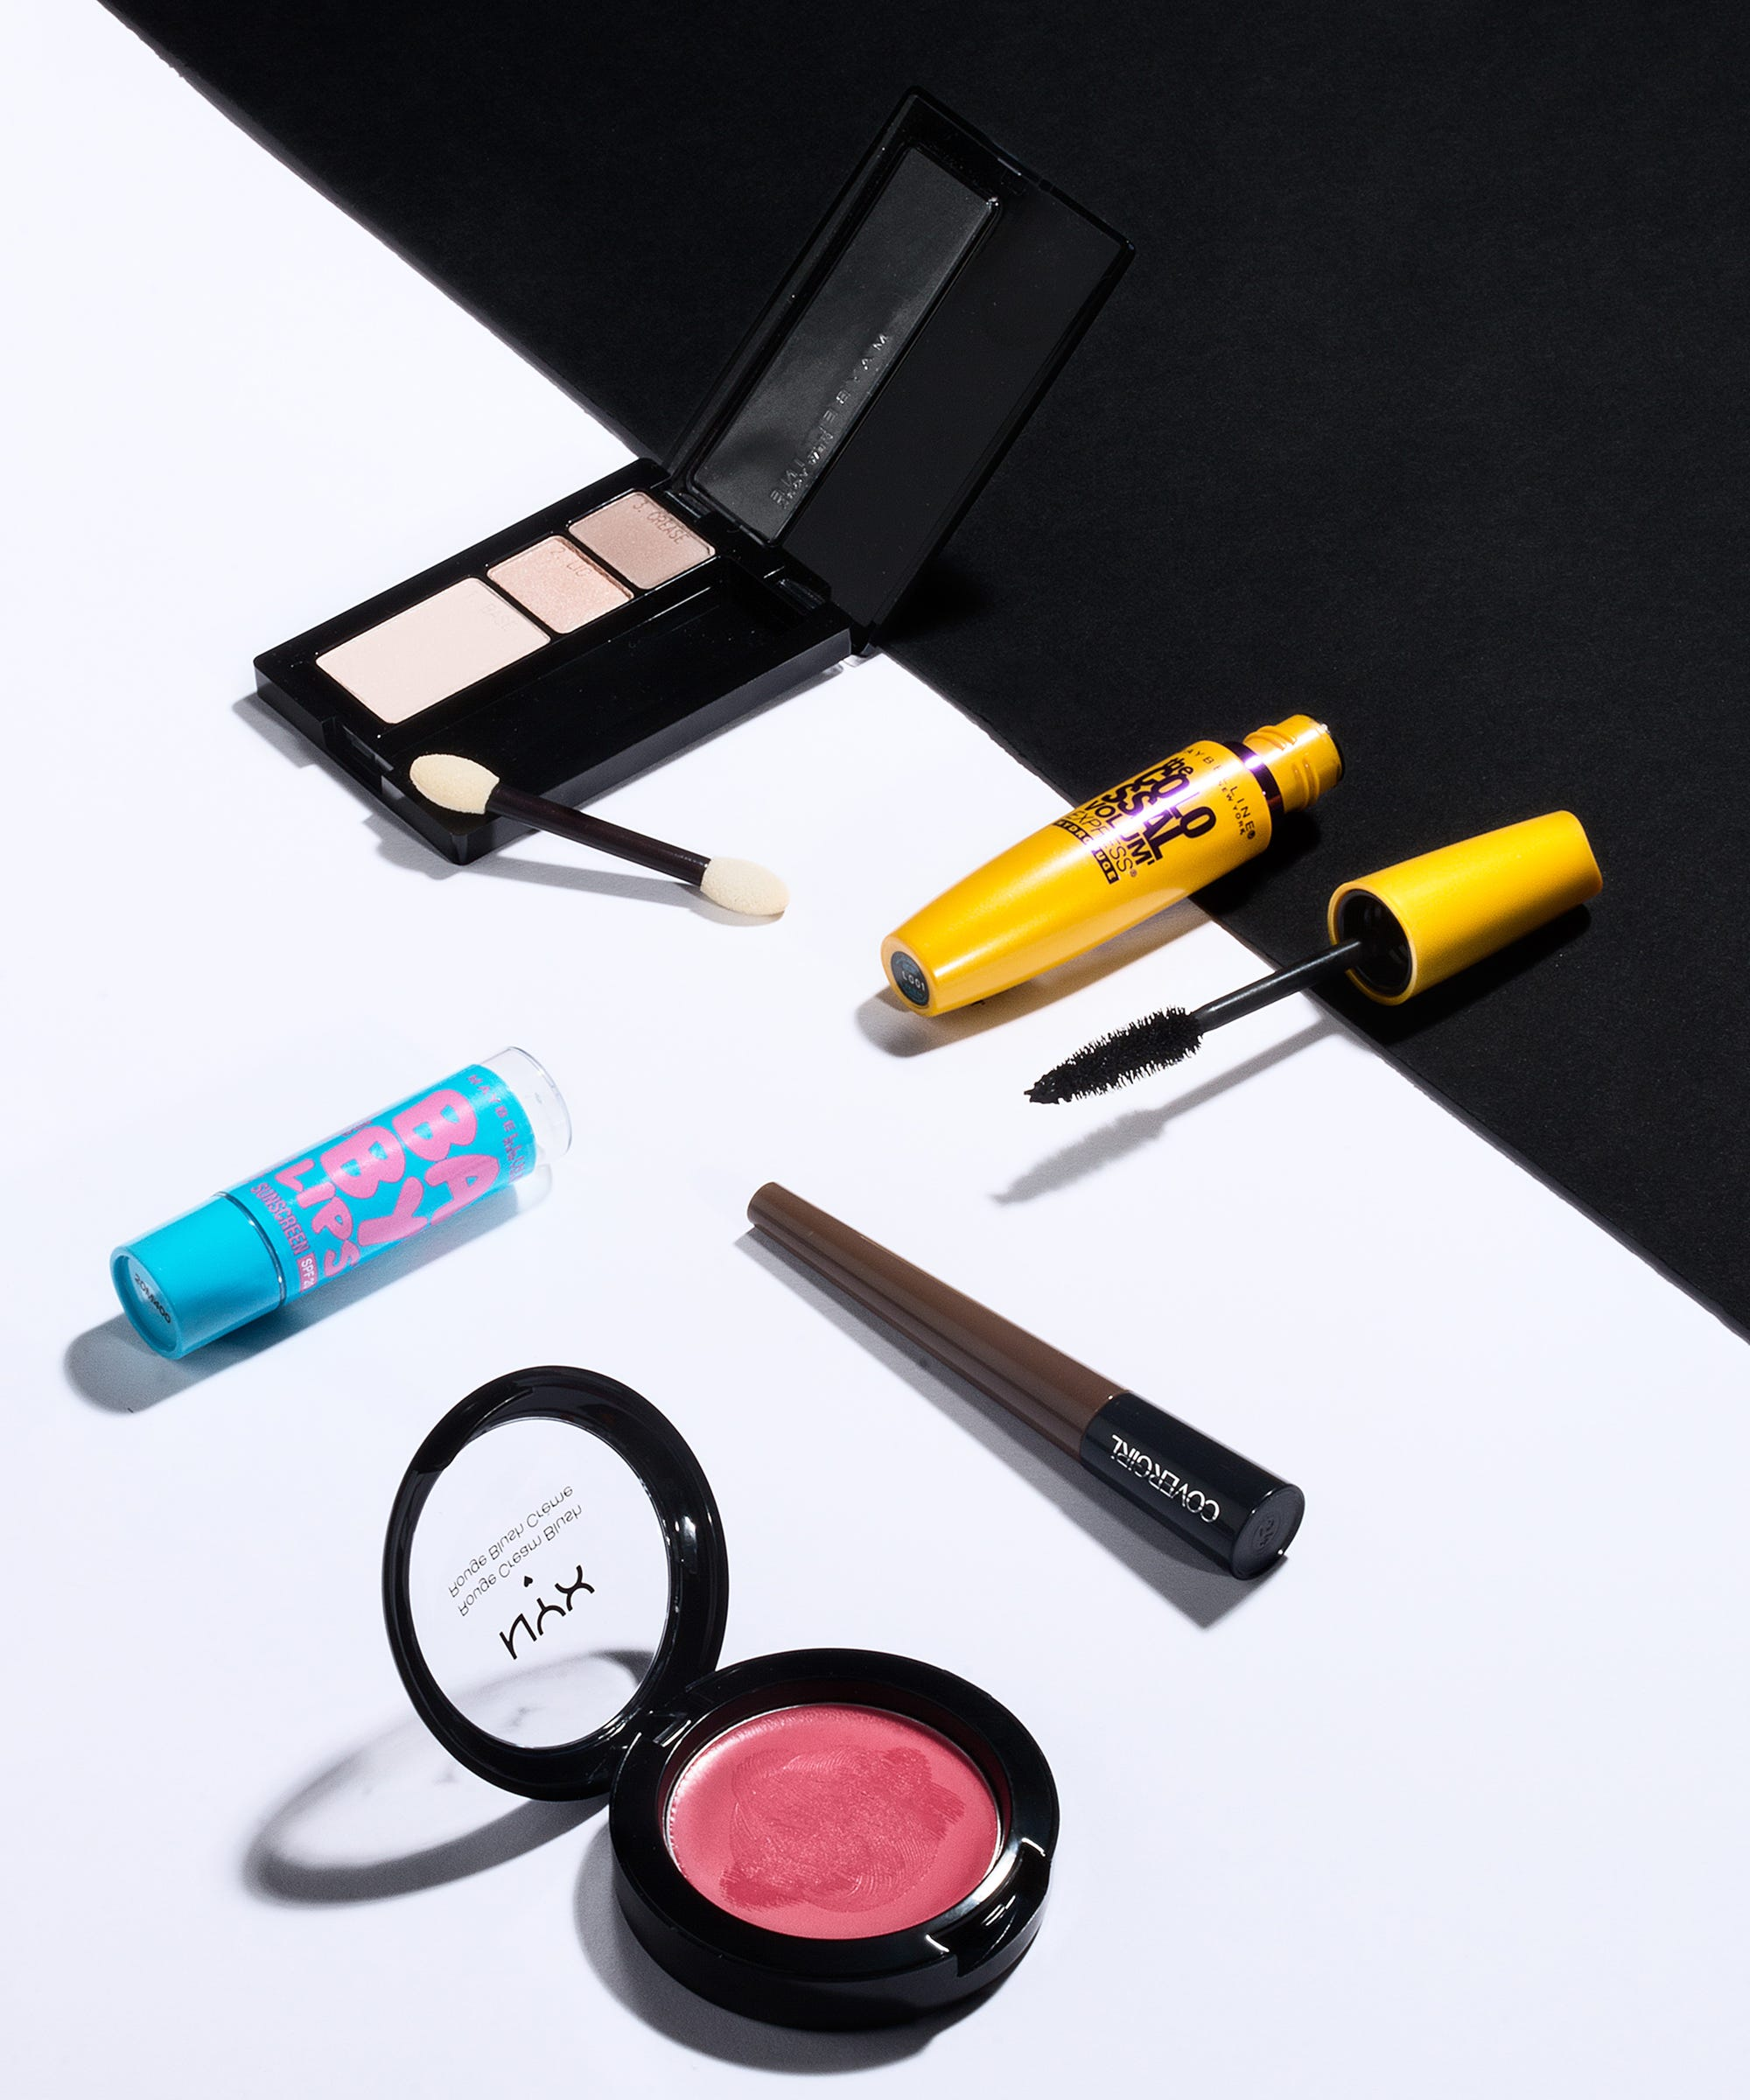 Cosmetics - a luxury or a necessity